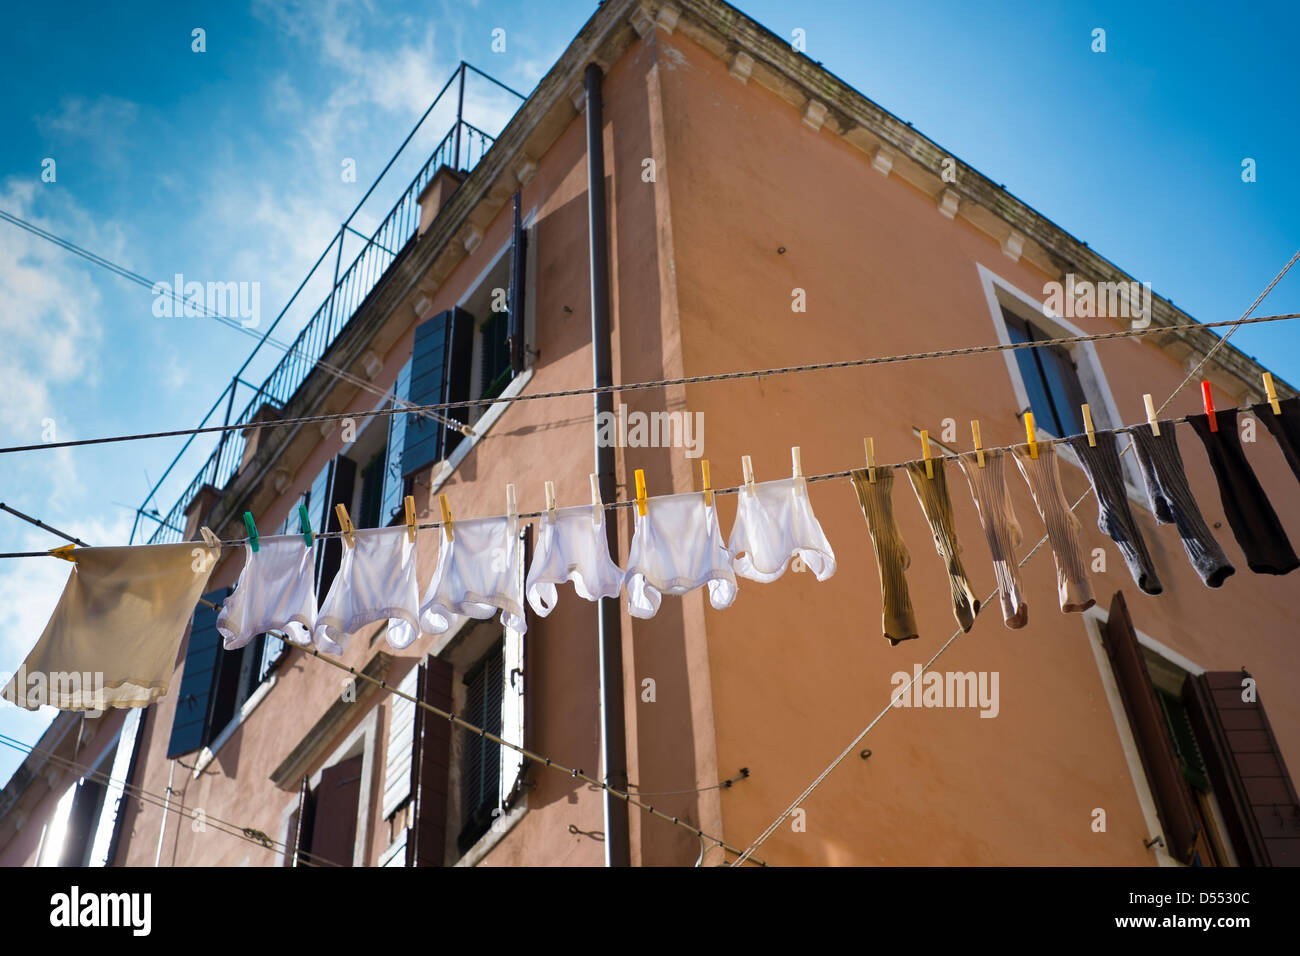 Hanging out the washing in Venice, Italy - Stock Image